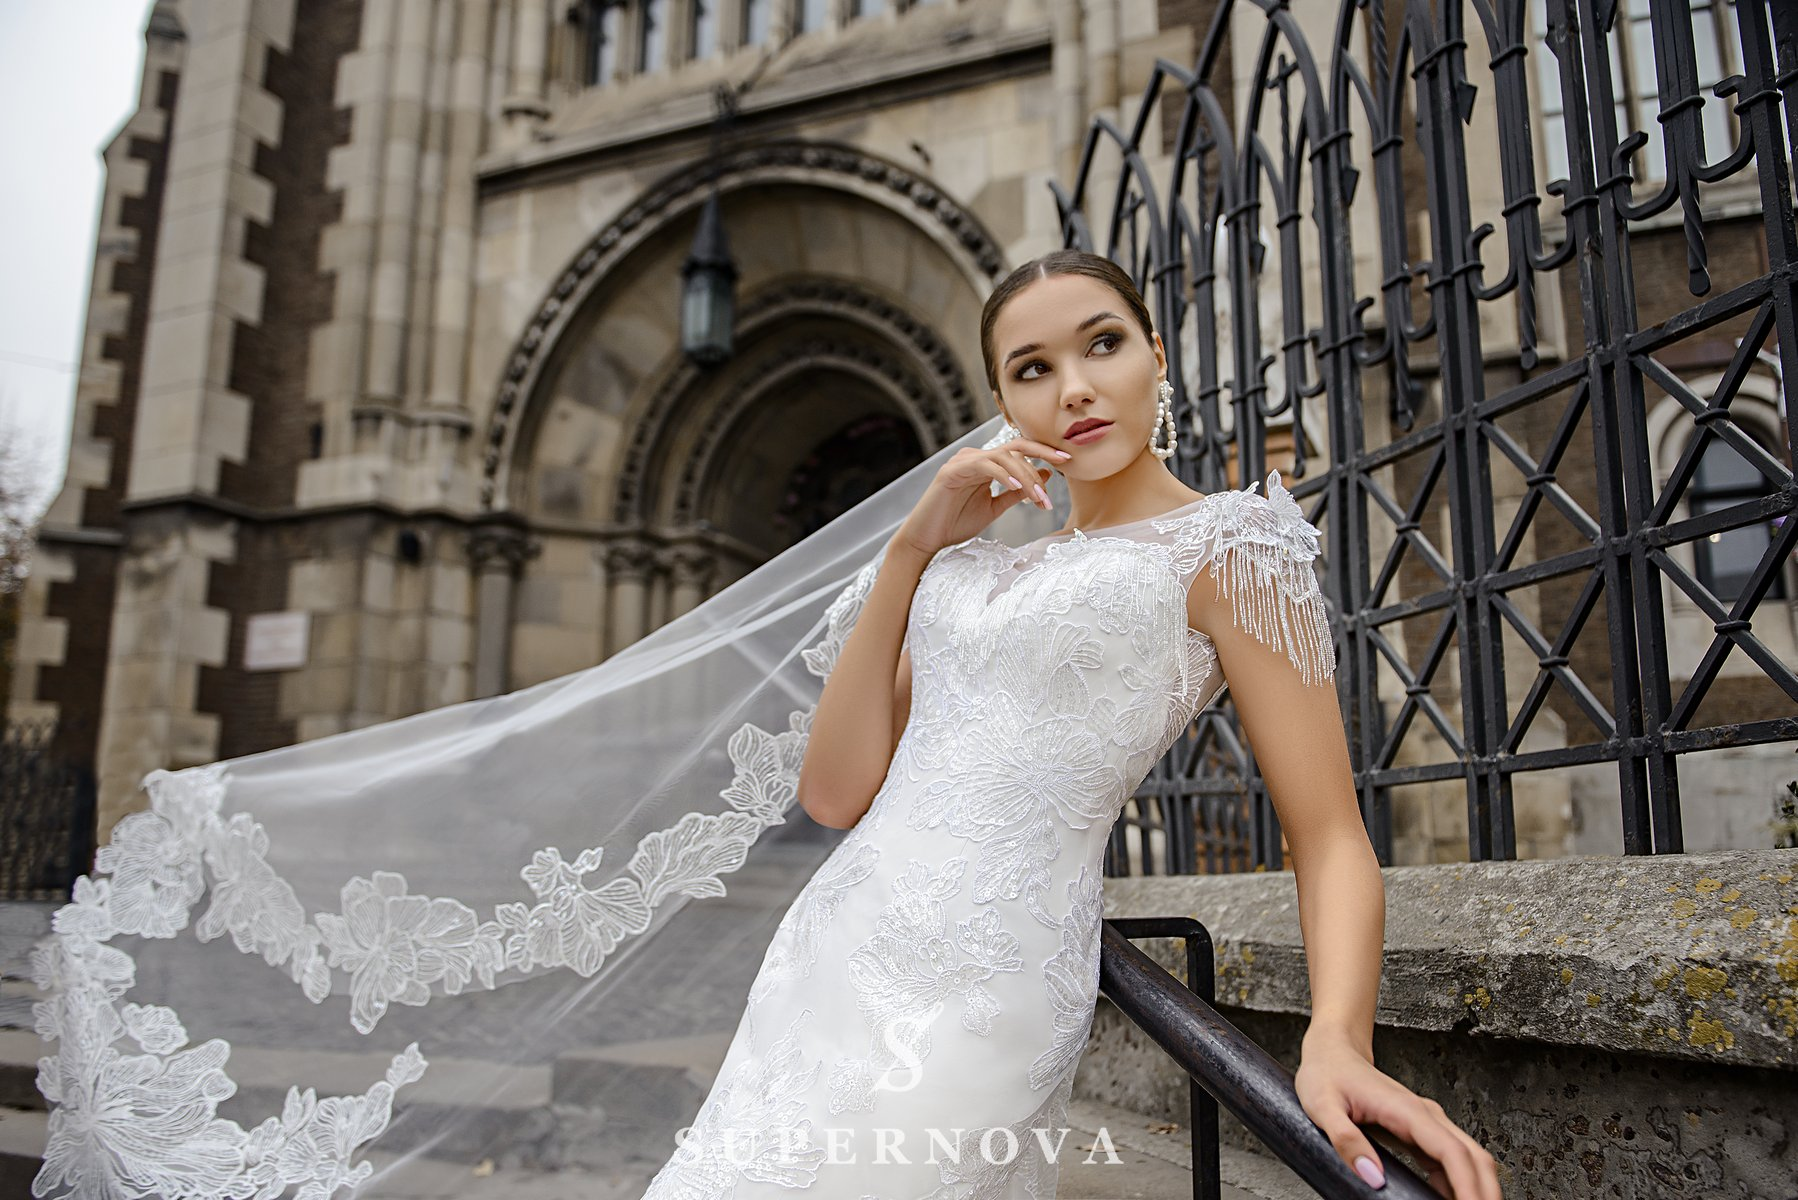 Wedding spanish veil  on wholesale from the Super Nova manufacturer-1